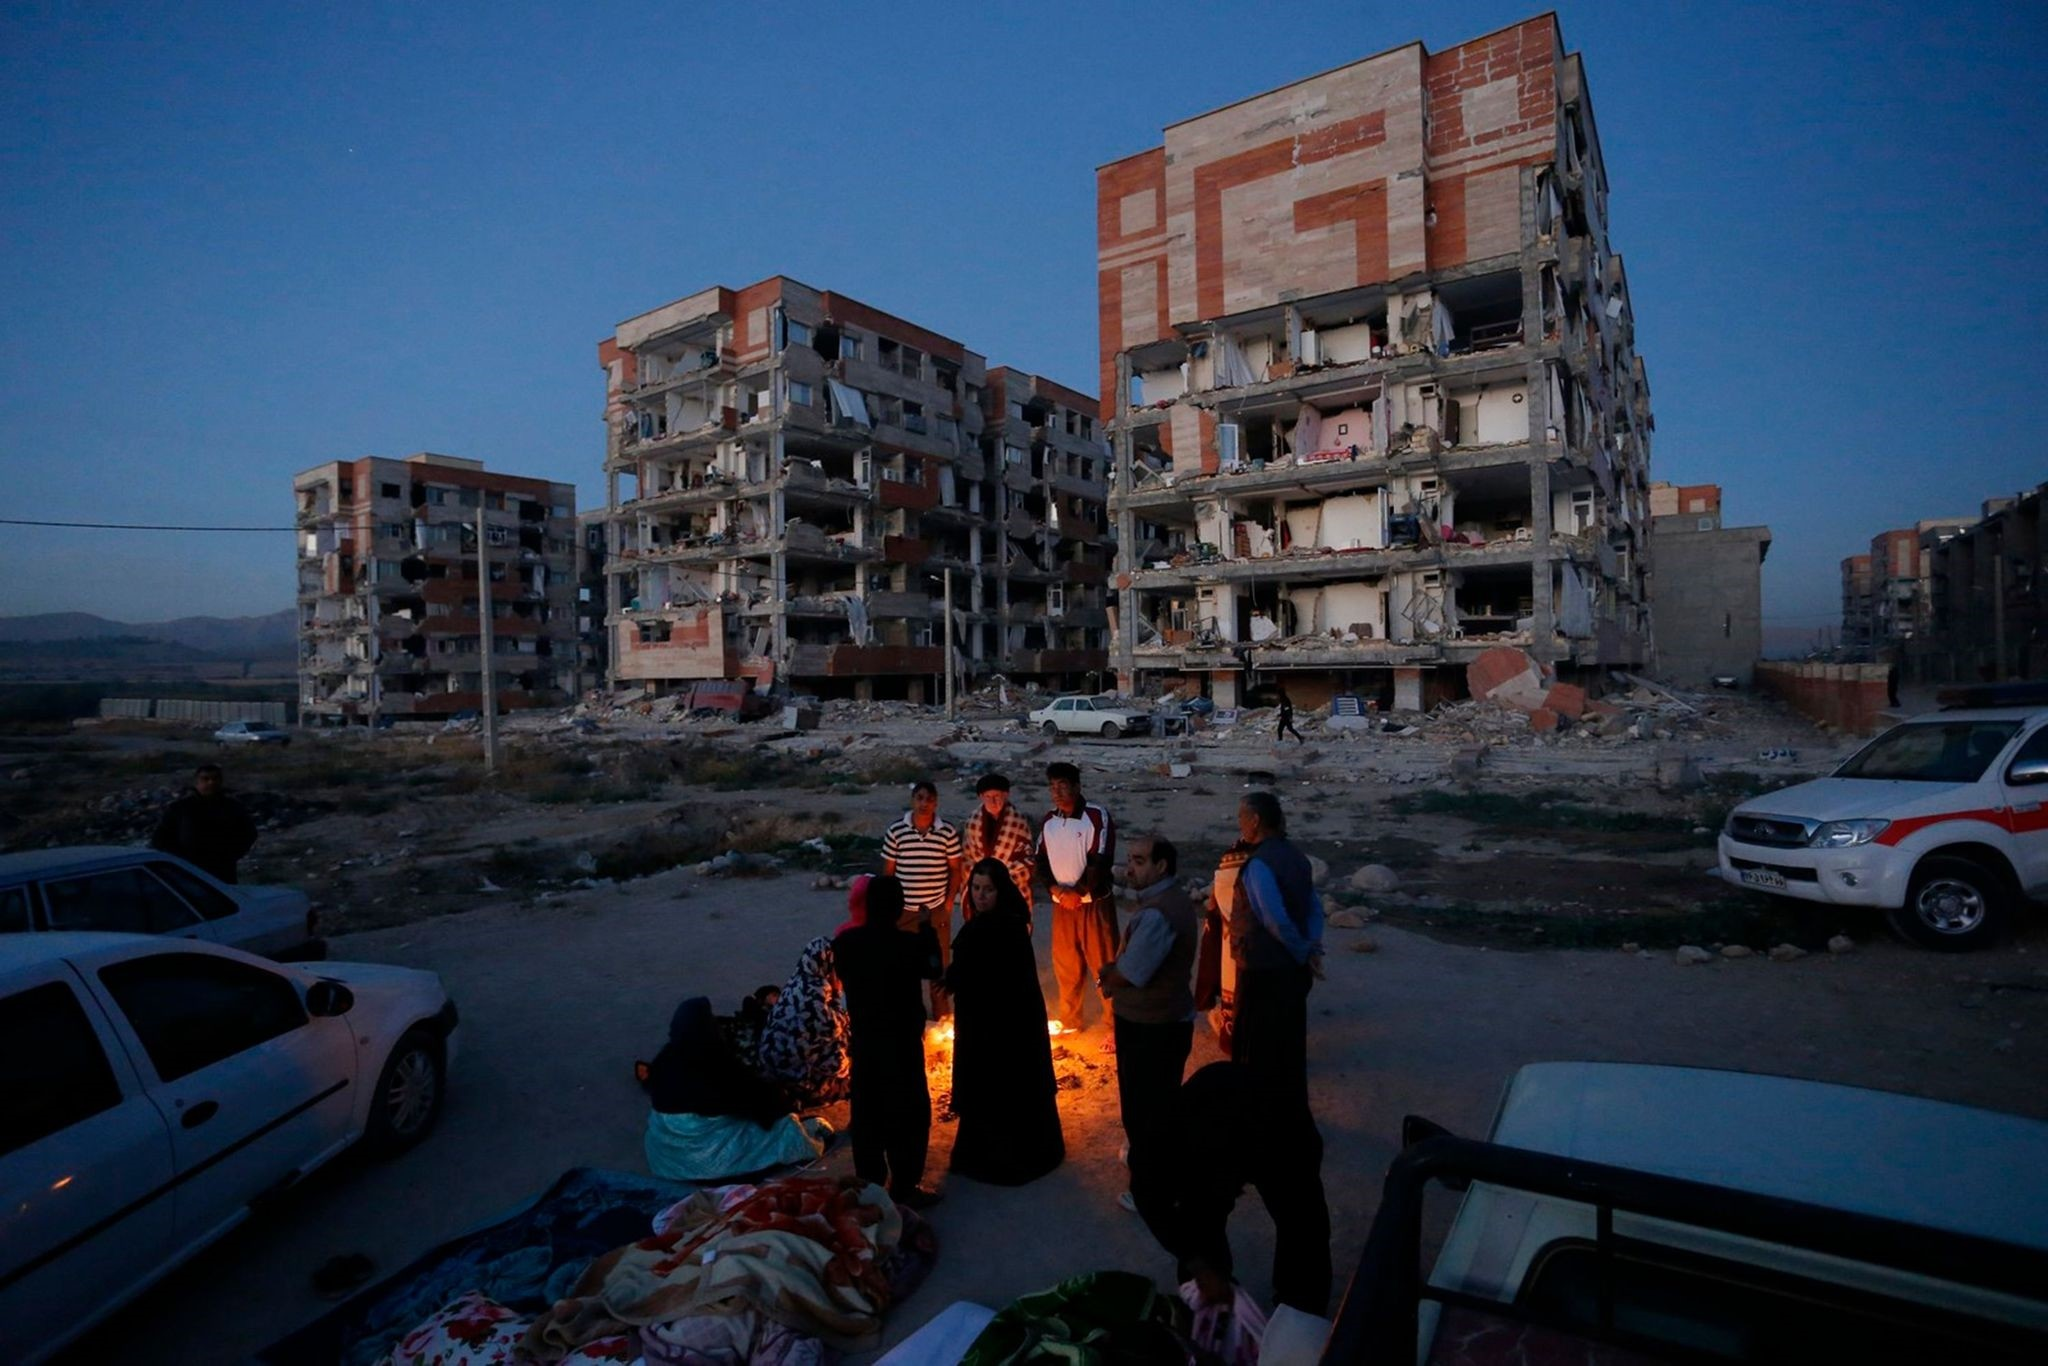 Residents huddle by a fire in an open area following a 7.3-magnitude earthquake in western Iran's Kermanshah province, Nov. 13.